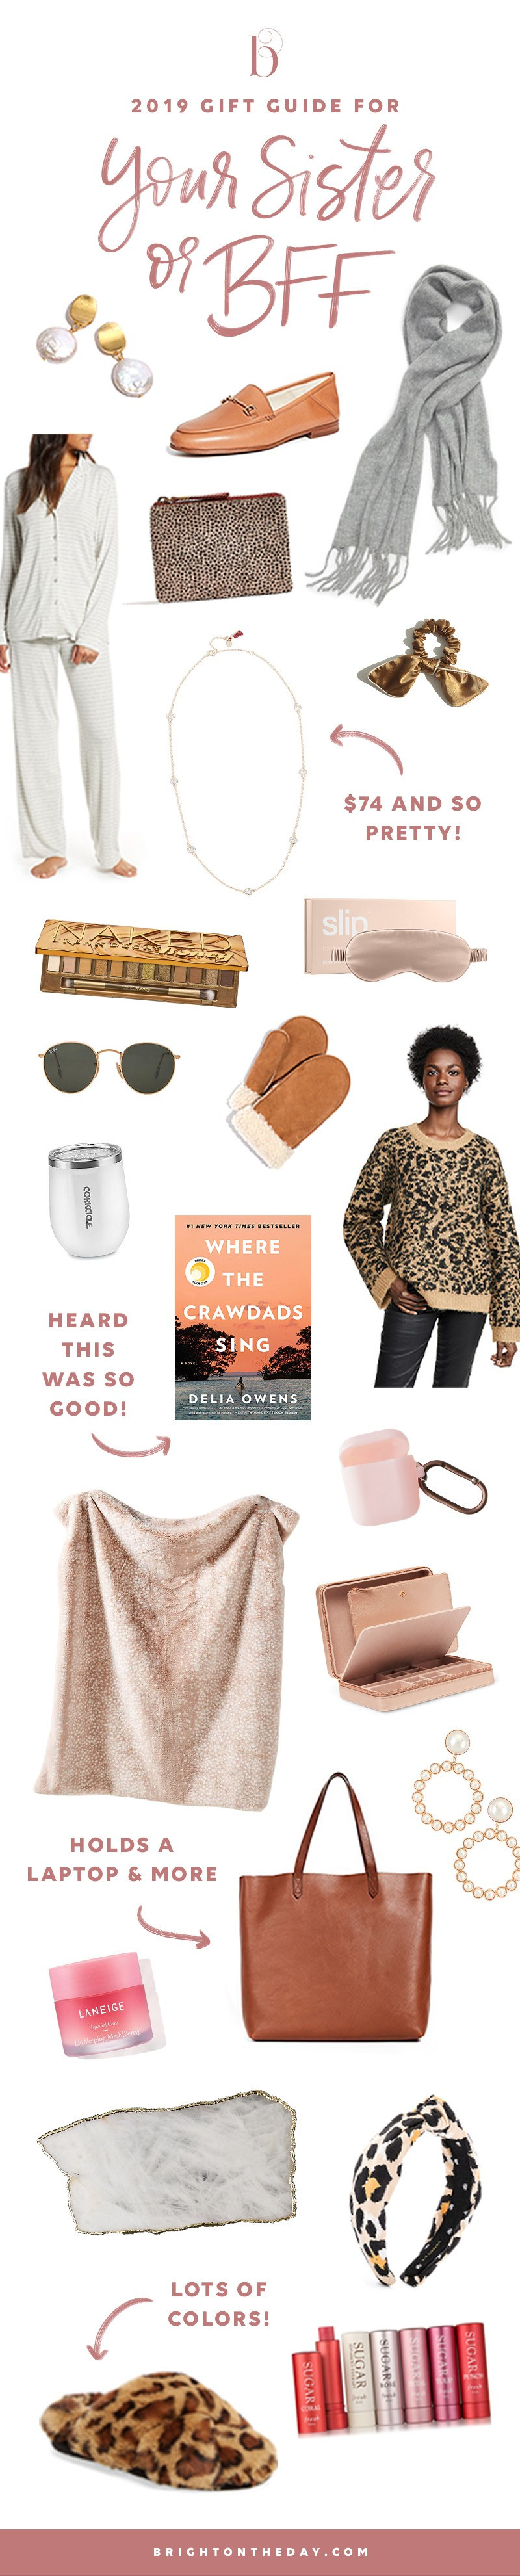 2019 Gift Guide For Your Sister Or Bff Brightontheday